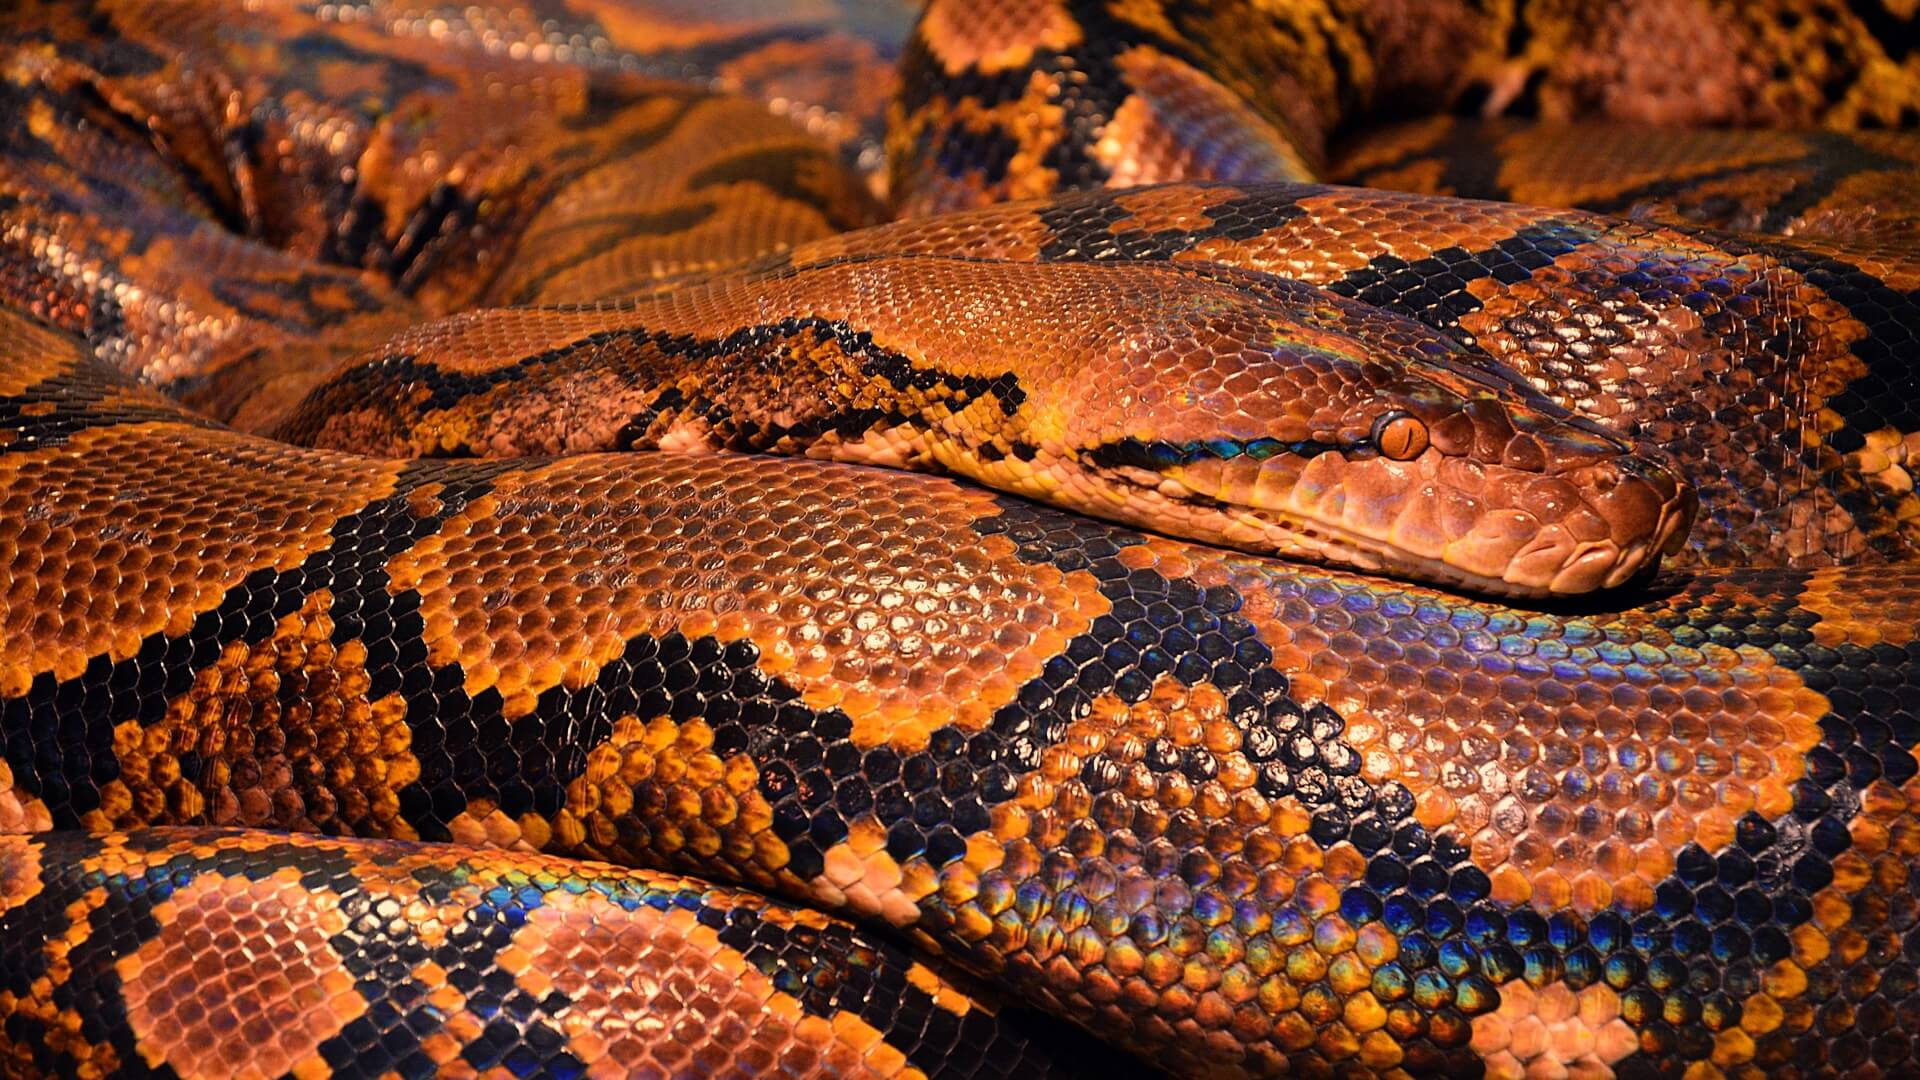 reptile snake wallpaper background